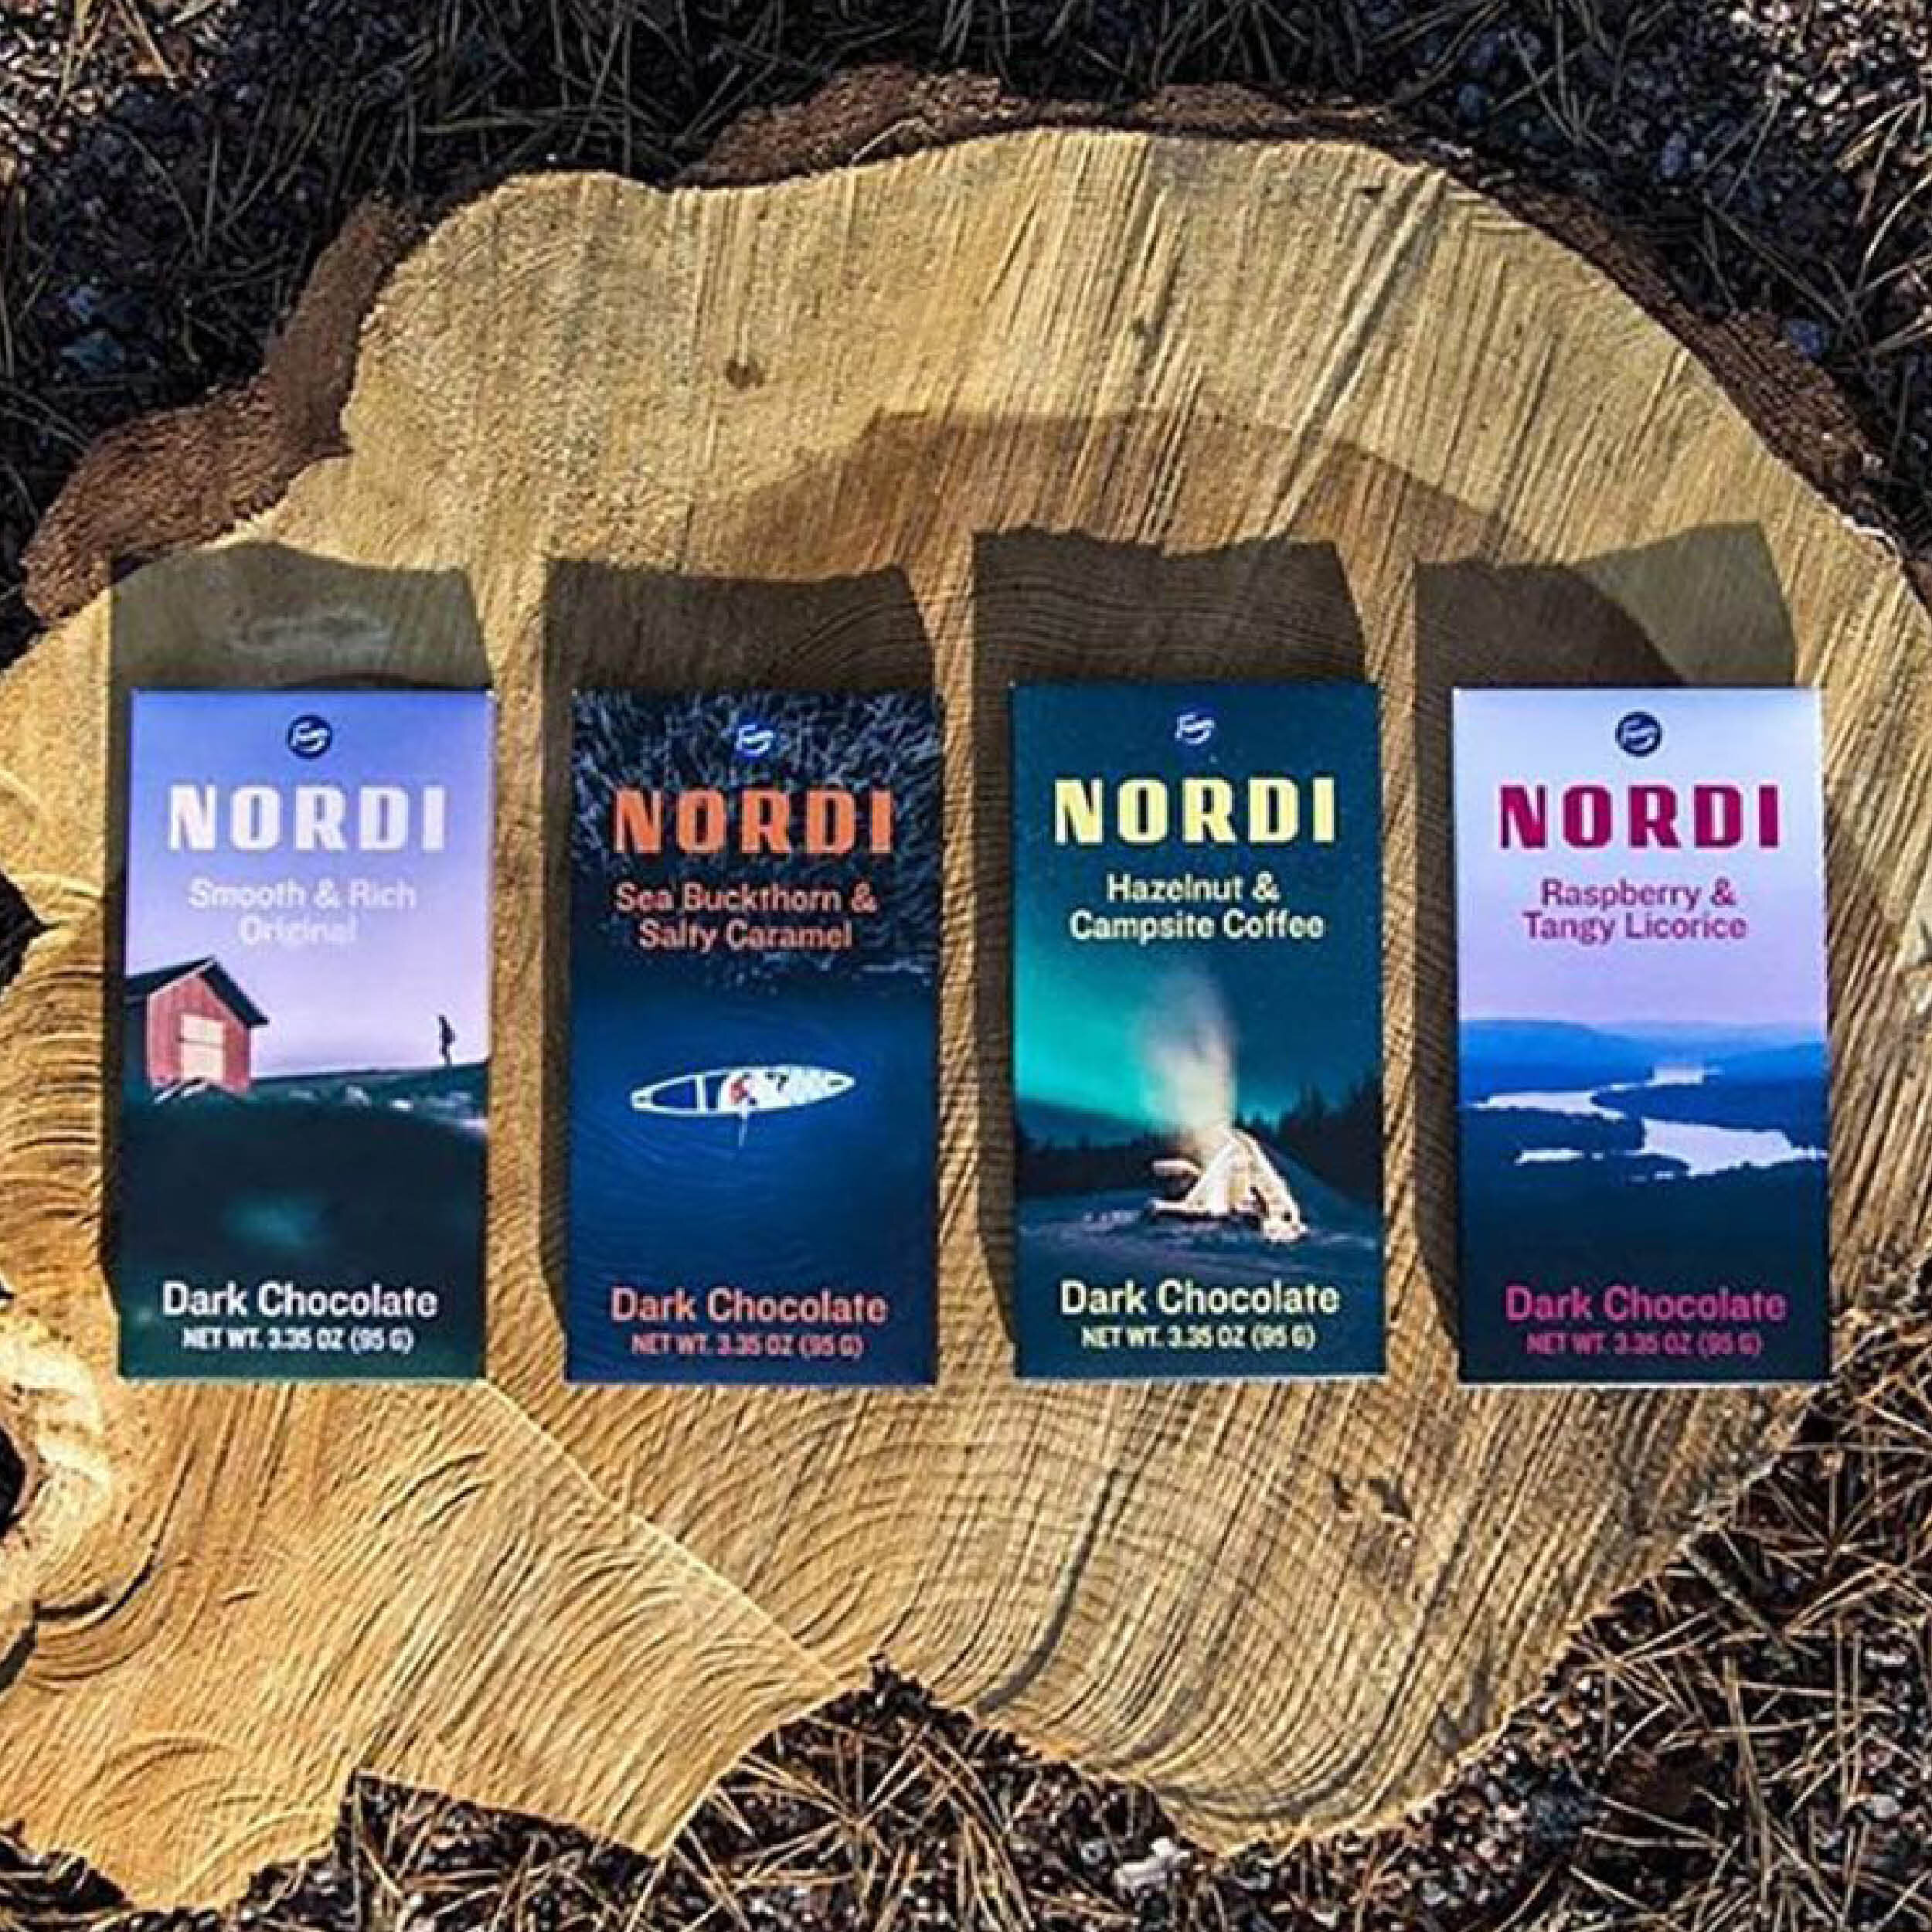 Nordi  is a love letter to the signature flavors of the wilderness and uniquely Nordic experiences. This approach to chocolate combines an appreciation for our environment and the meaningful production philosophy of Fazer. Nordi is made with Non-GMO ingredients and 100% sustainably sourced cacao.